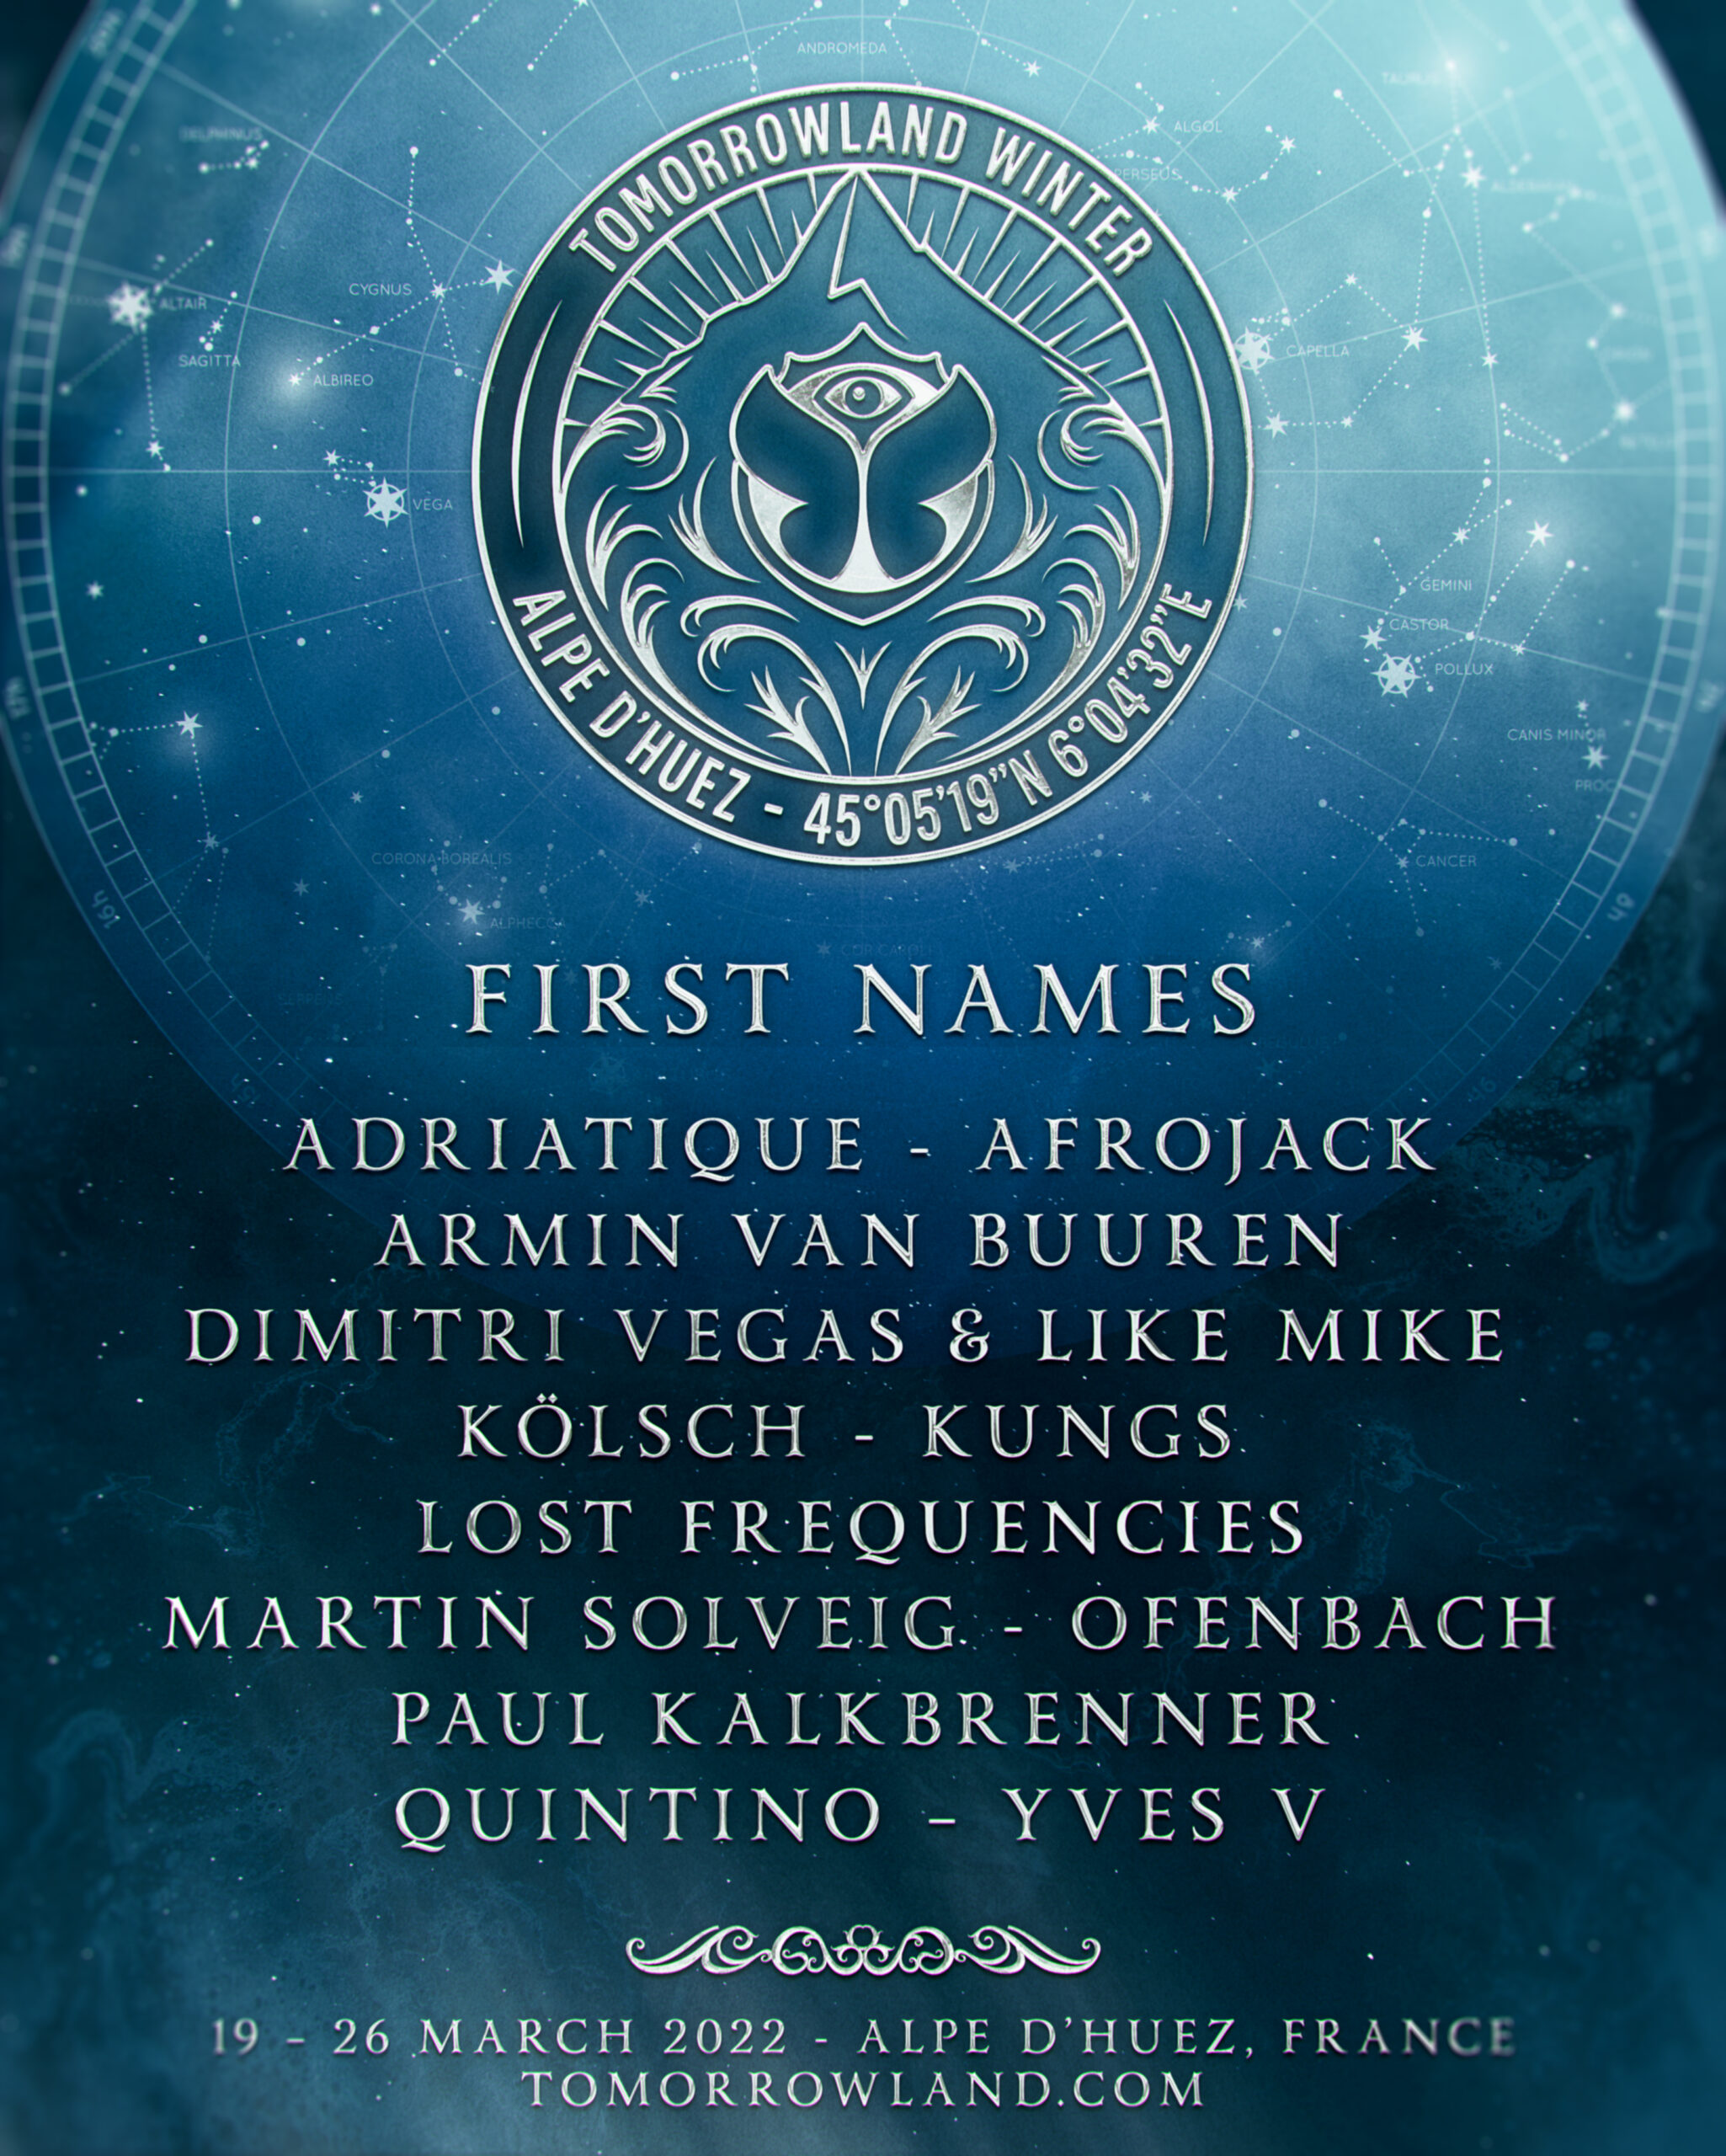 Tomorrowland Winter unveils the first names !